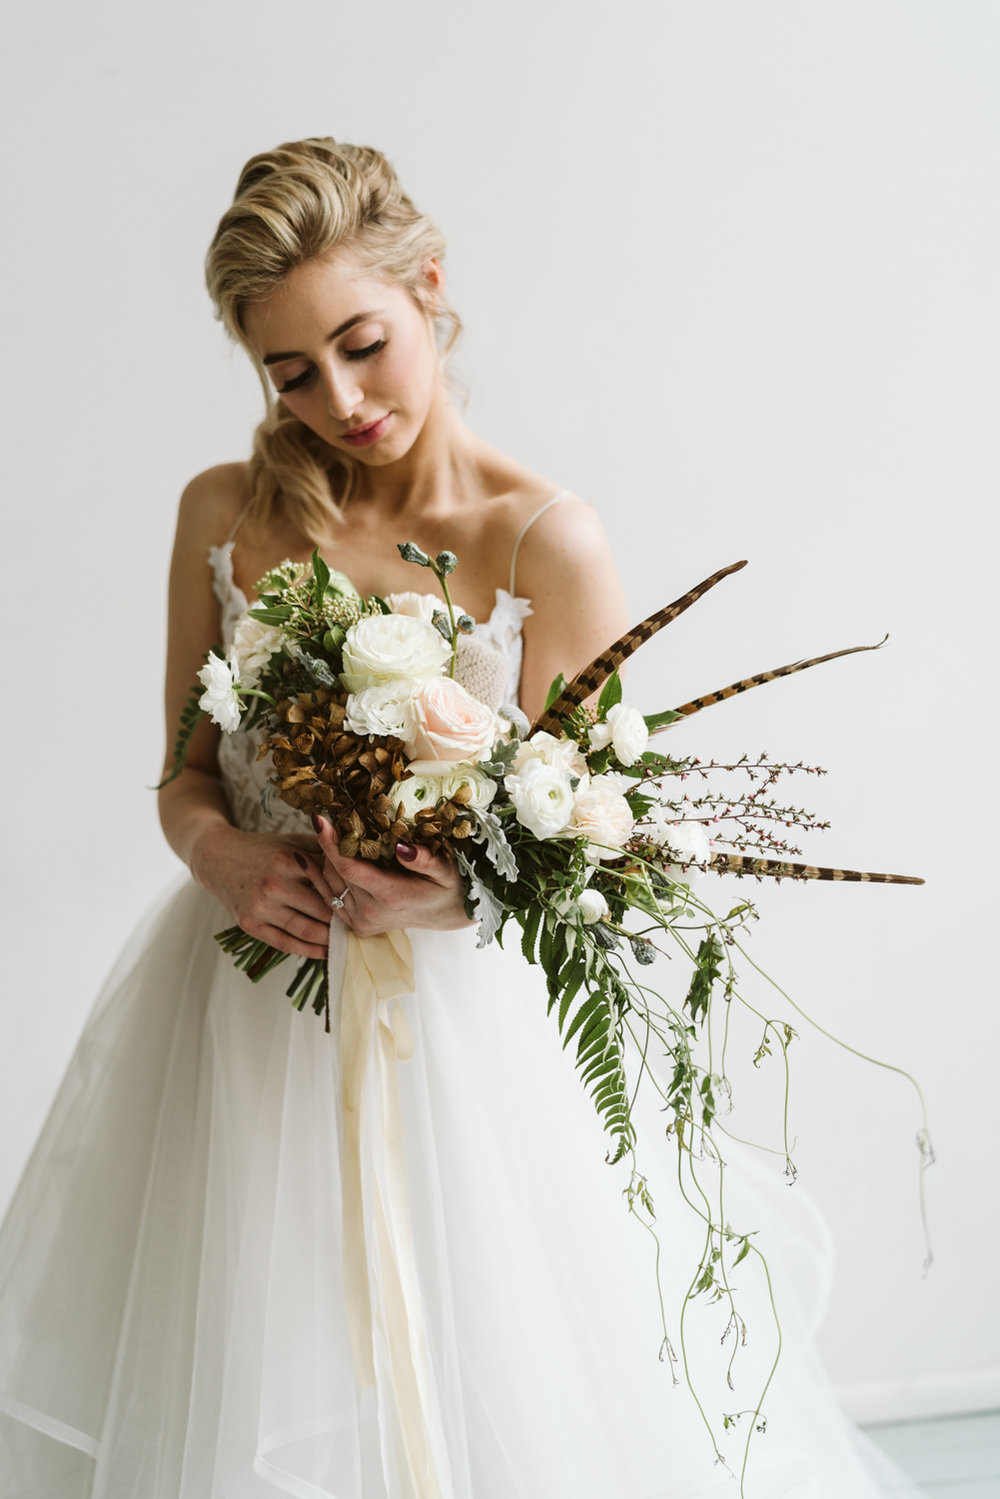 April Yentas Photography - January Styled Shoot-223.jpg